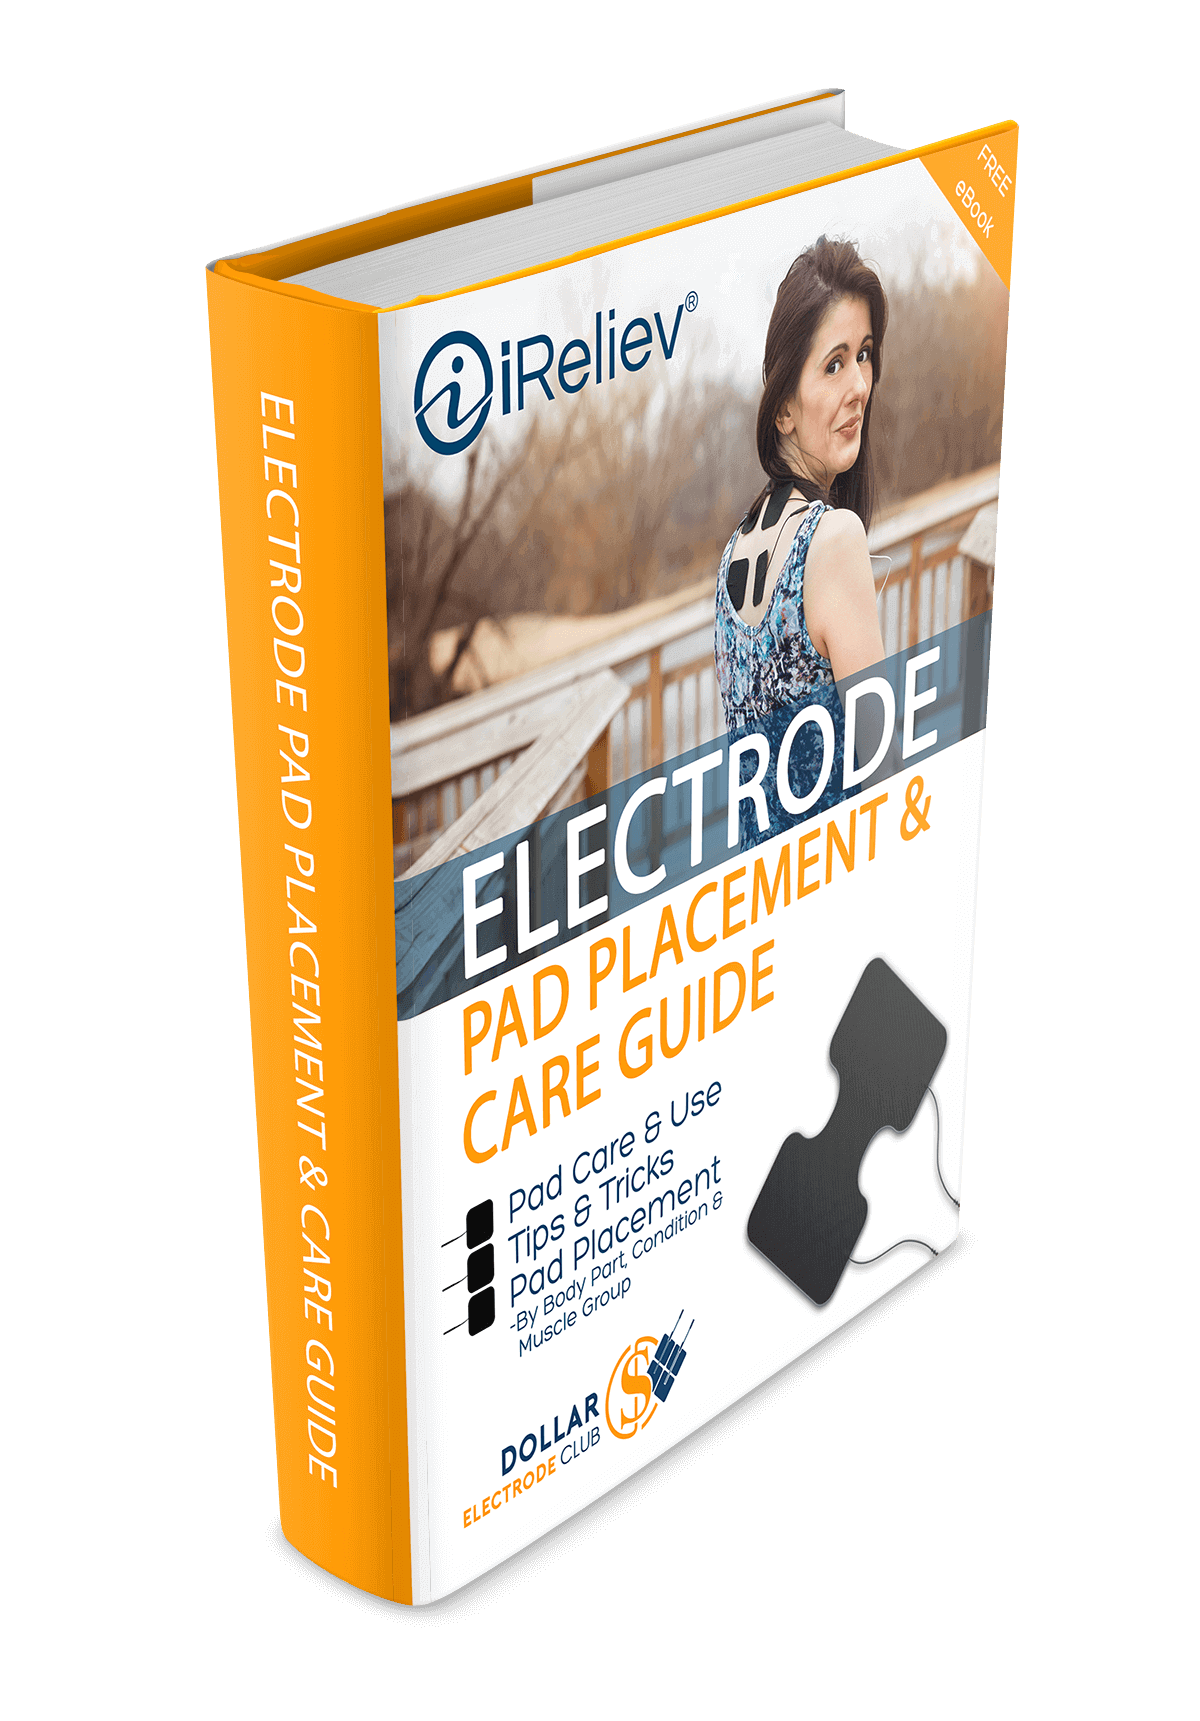 Electrode Pad Placement & Care Guide